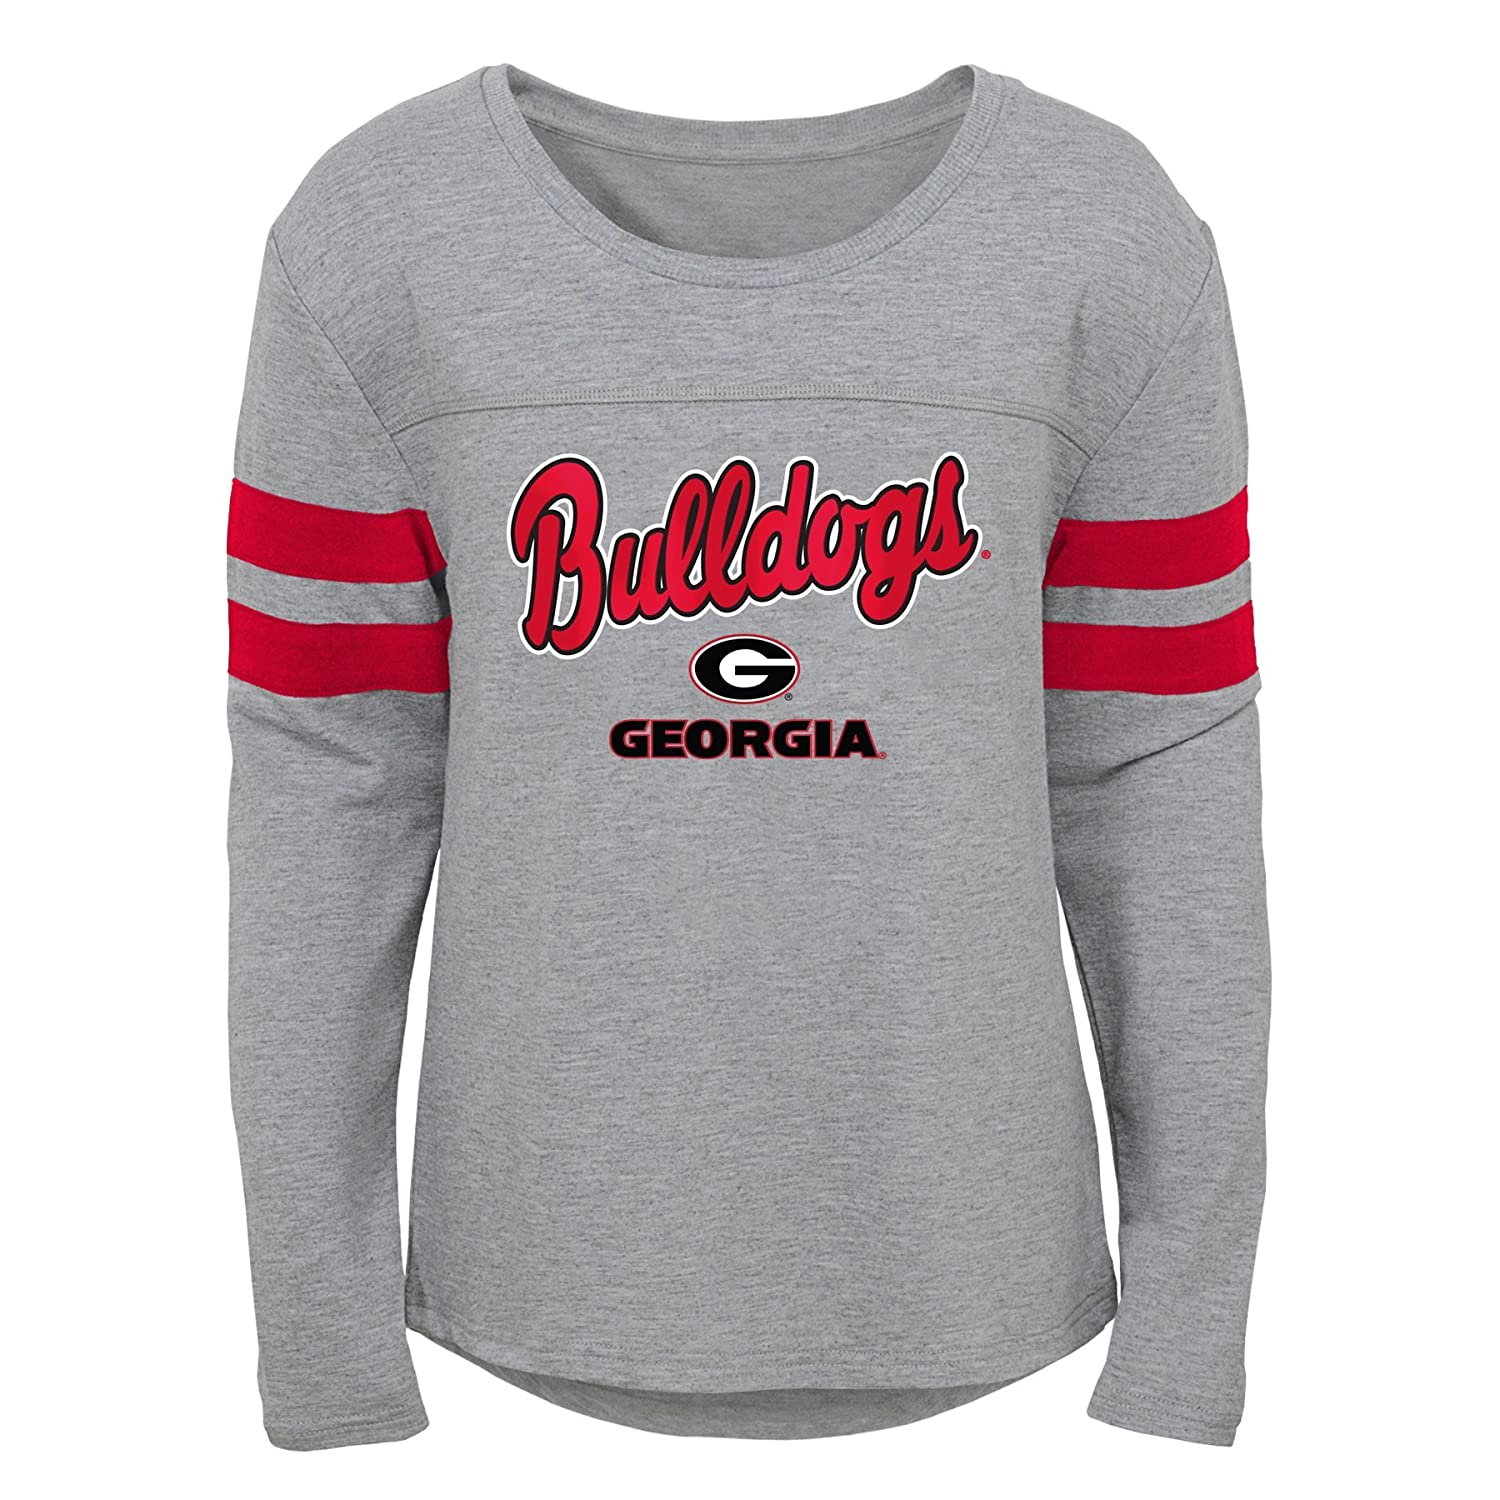 7-8 Youth Girls Small Heather Grey Outerstuff NCAA Georgia Bulldogs Youth Girls Field Armor Dolman Sleeve Top